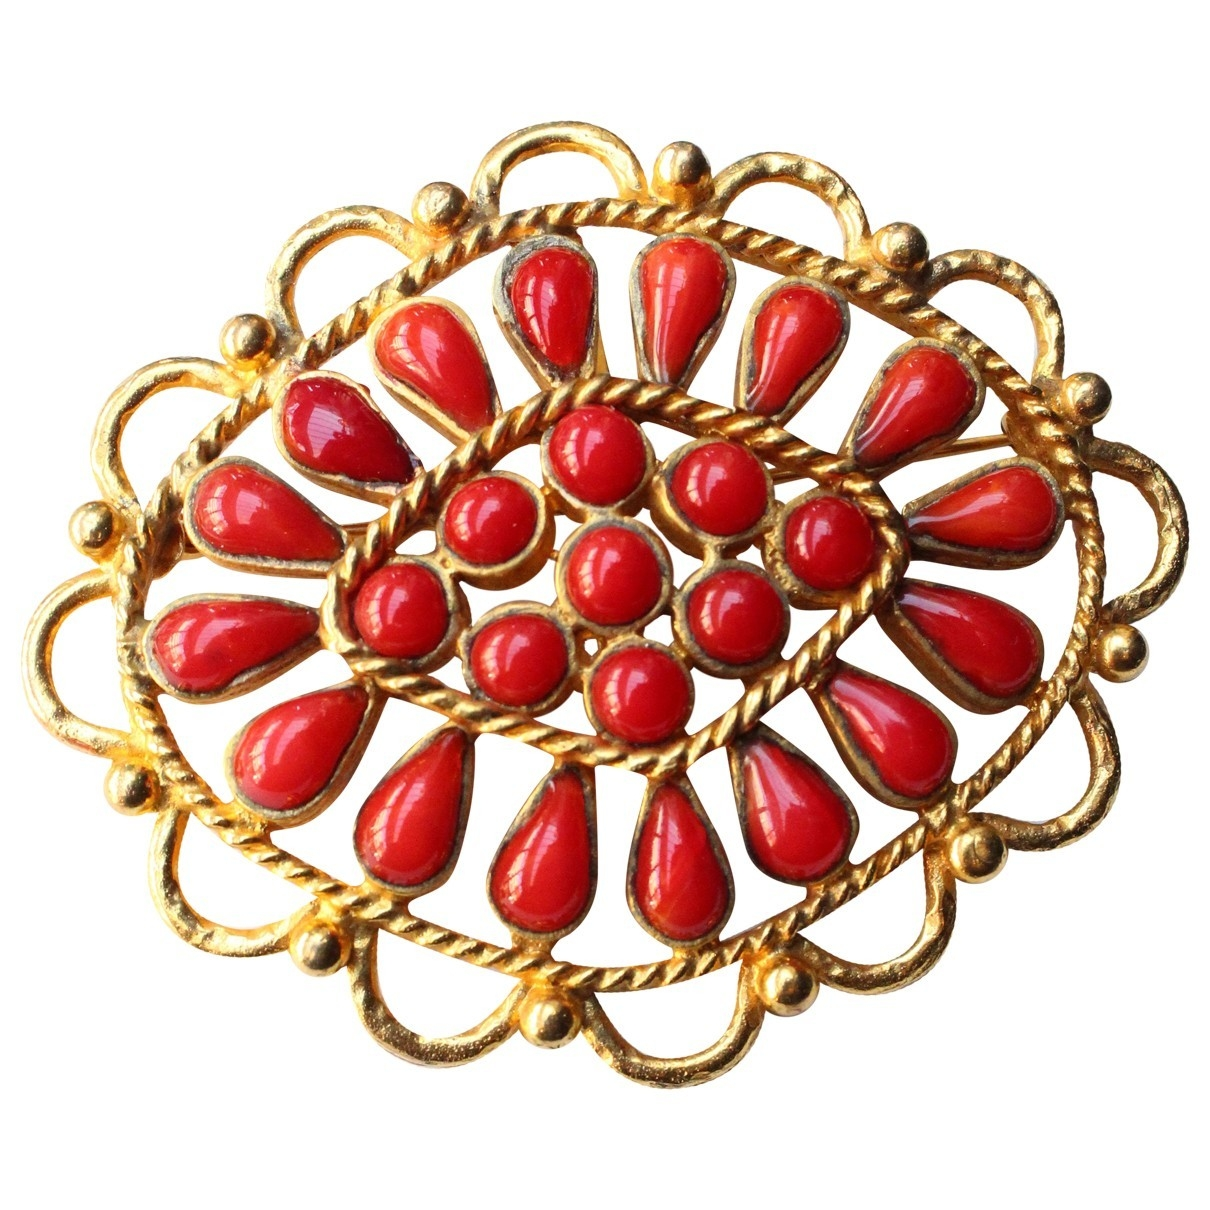 Broche Baroque en Metal Rojo Chanel